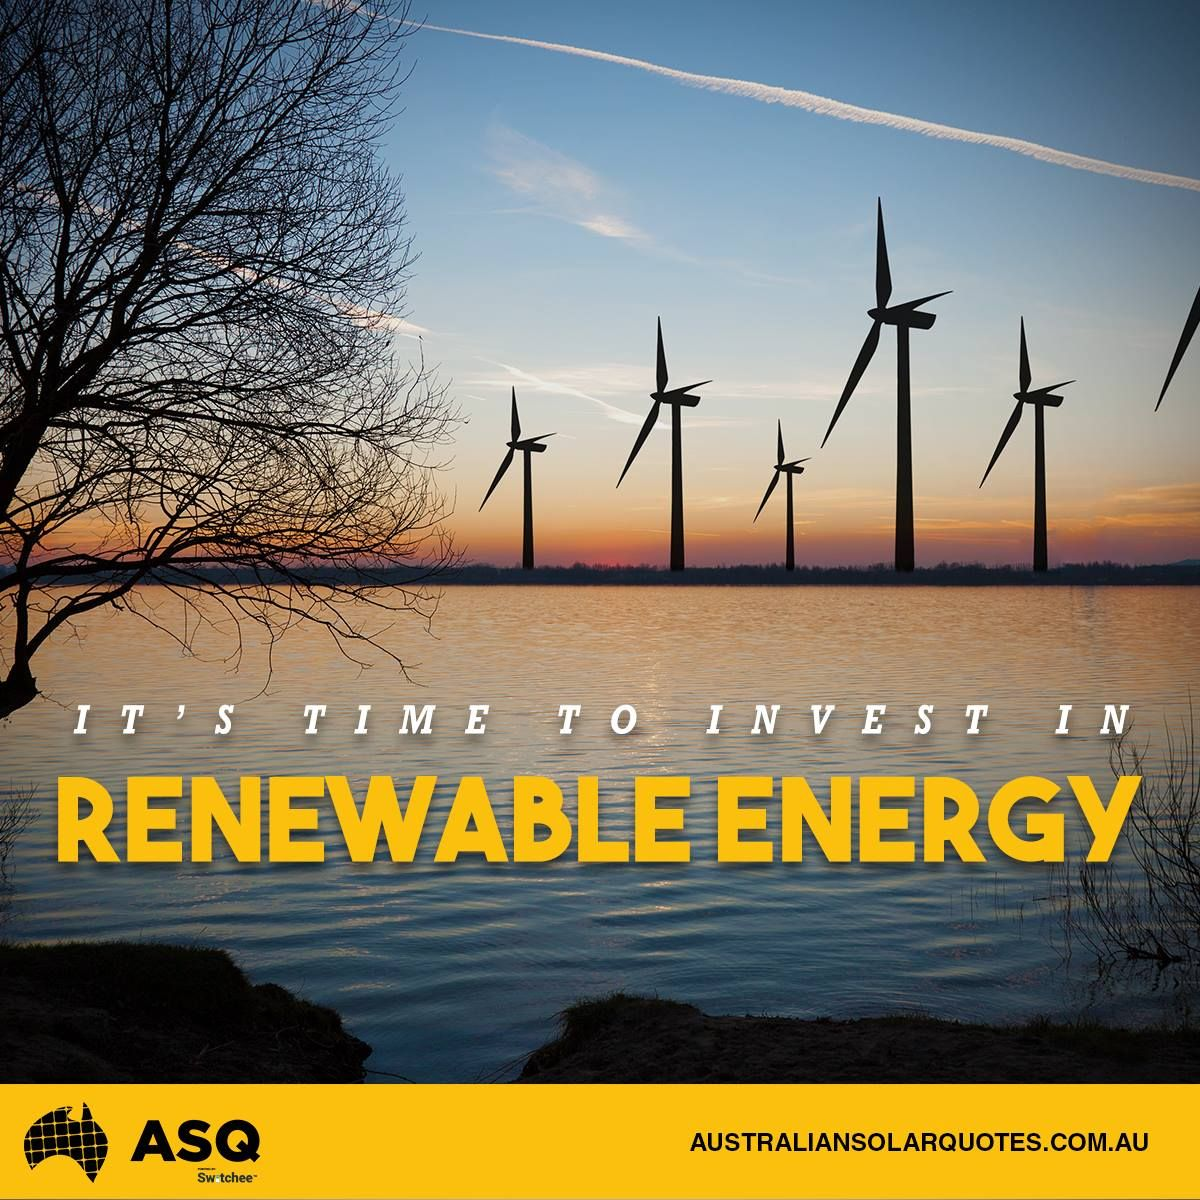 For many years, sustainability's corporate case has focused primarily on public relations rather than profit. However as renewable technology gets cheaper and coal prices go up, the decision to move away from fossil fuels is making a lot of financial sense | #RenewableEnergy